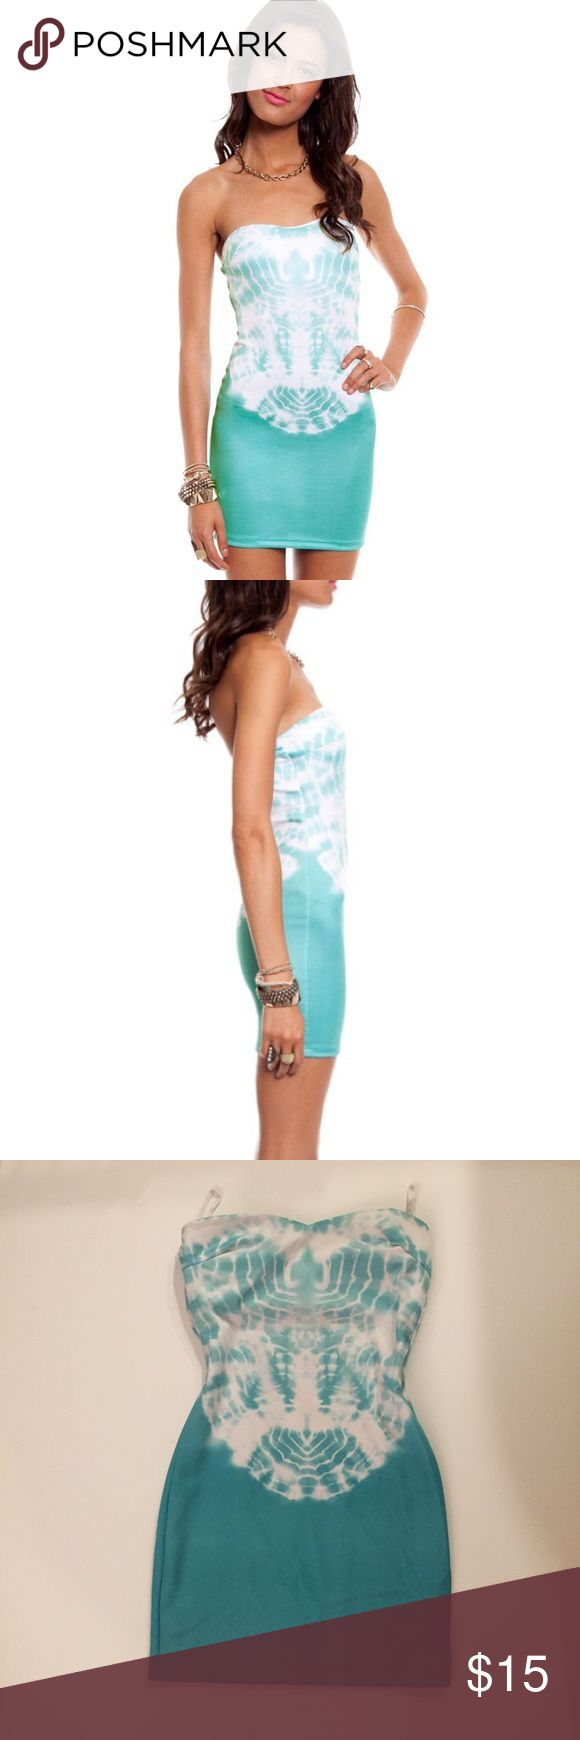 Like new tobi scuba tie dye strapless dress-S Turquoise color tie dye strapless dress from tobi,  only worn a couple times.  Size small tags: lulus, forever 21, missguided, top shop, h and m, Charlotte Russe, Tobi Dresses Mini